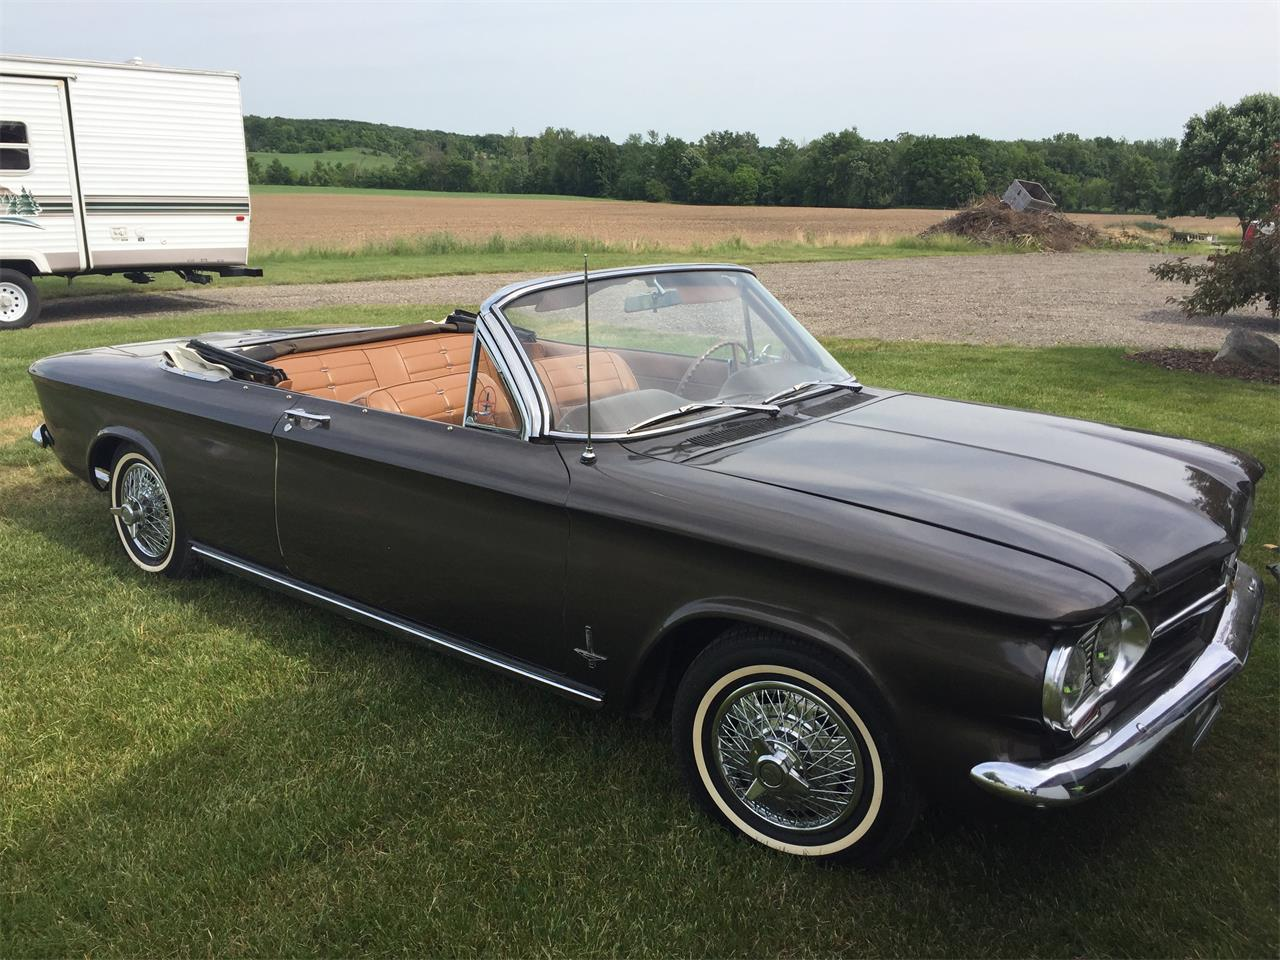 Large Picture of Classic 1963 Chevrolet Corvair Monza Offered by a Private Seller - NNDG